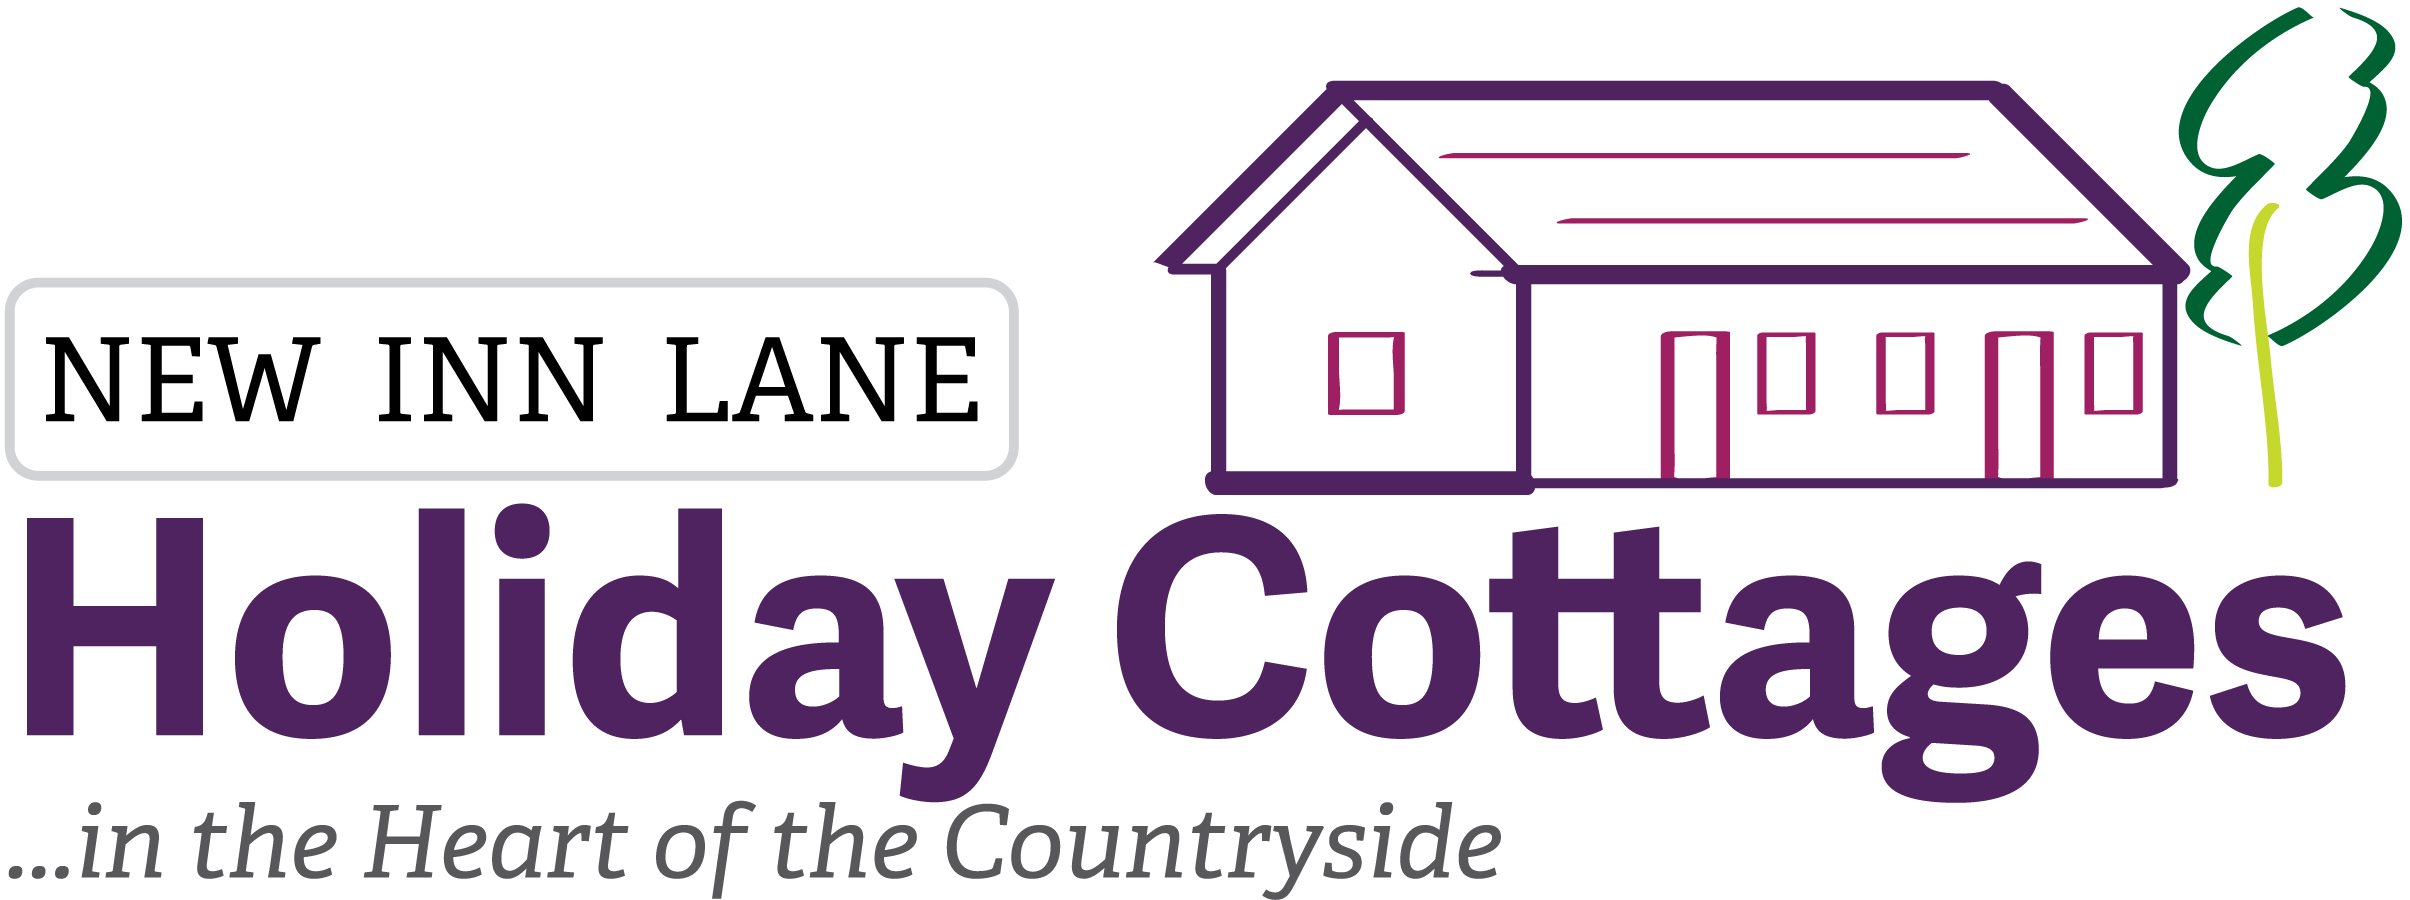 New Inn Lane Holiday Cottages | New Inn Lane Nurseries